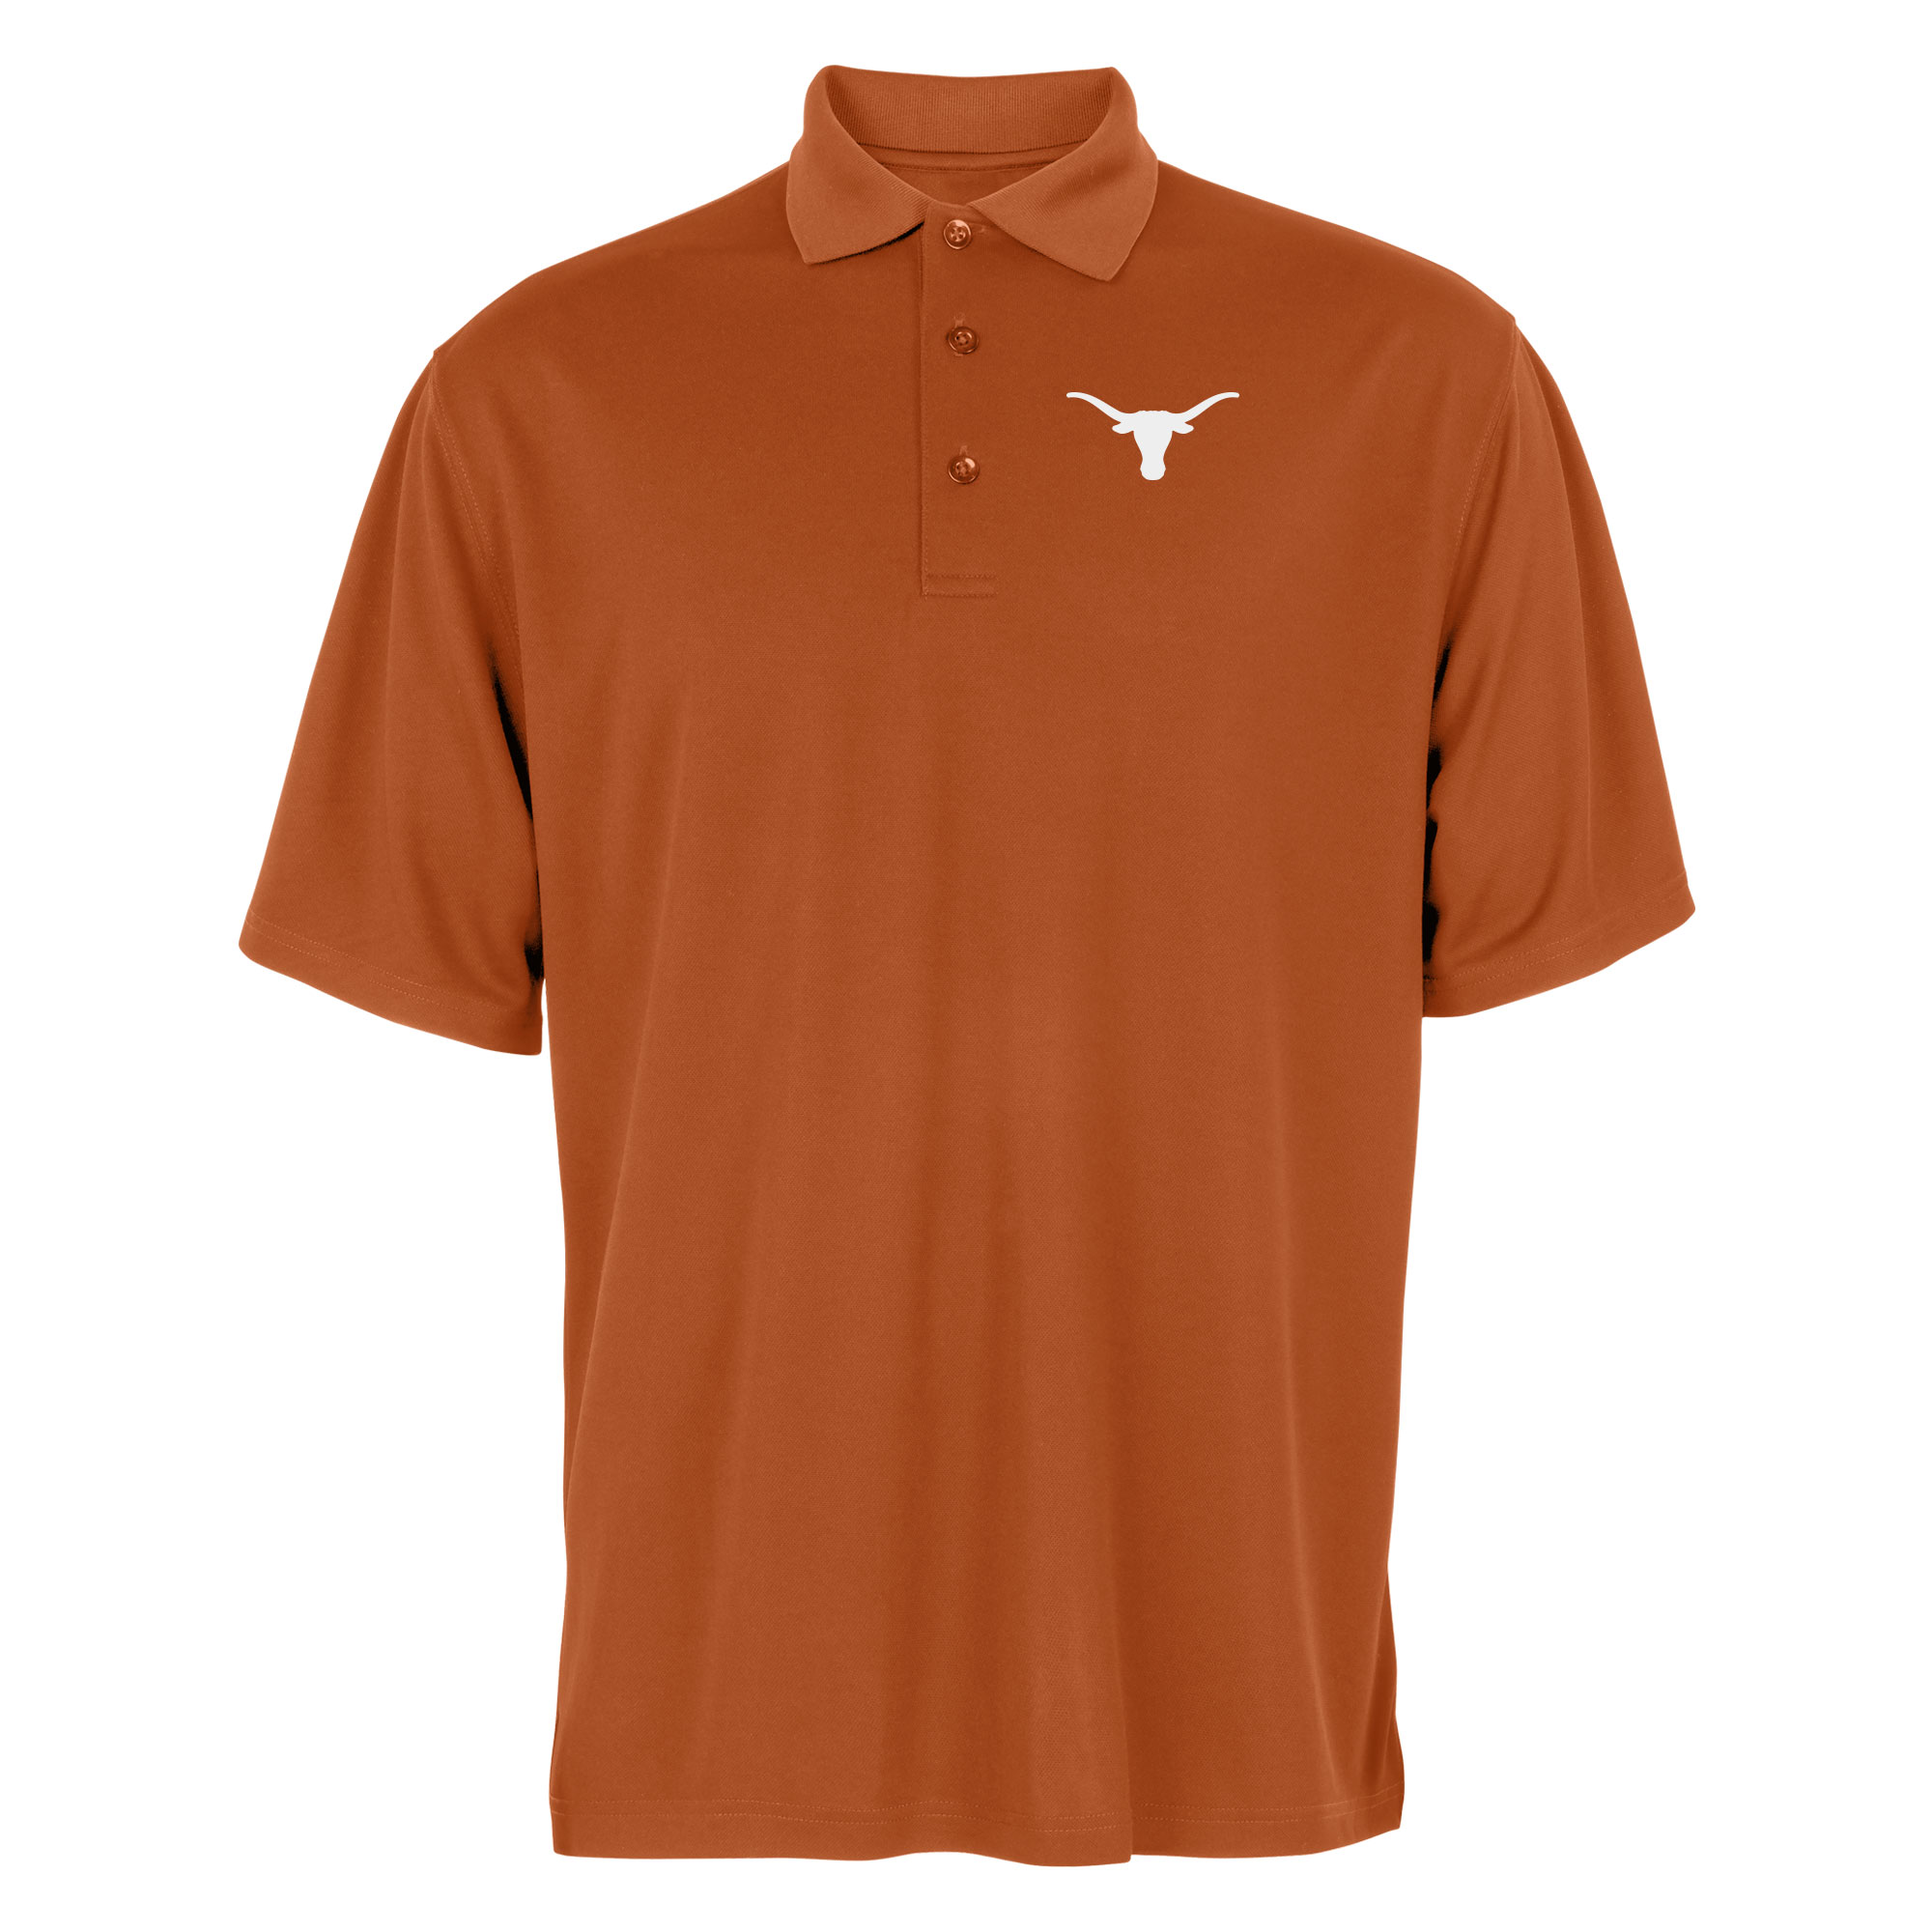 Men's Texas Orange Texas Longhorns Bevo Polo